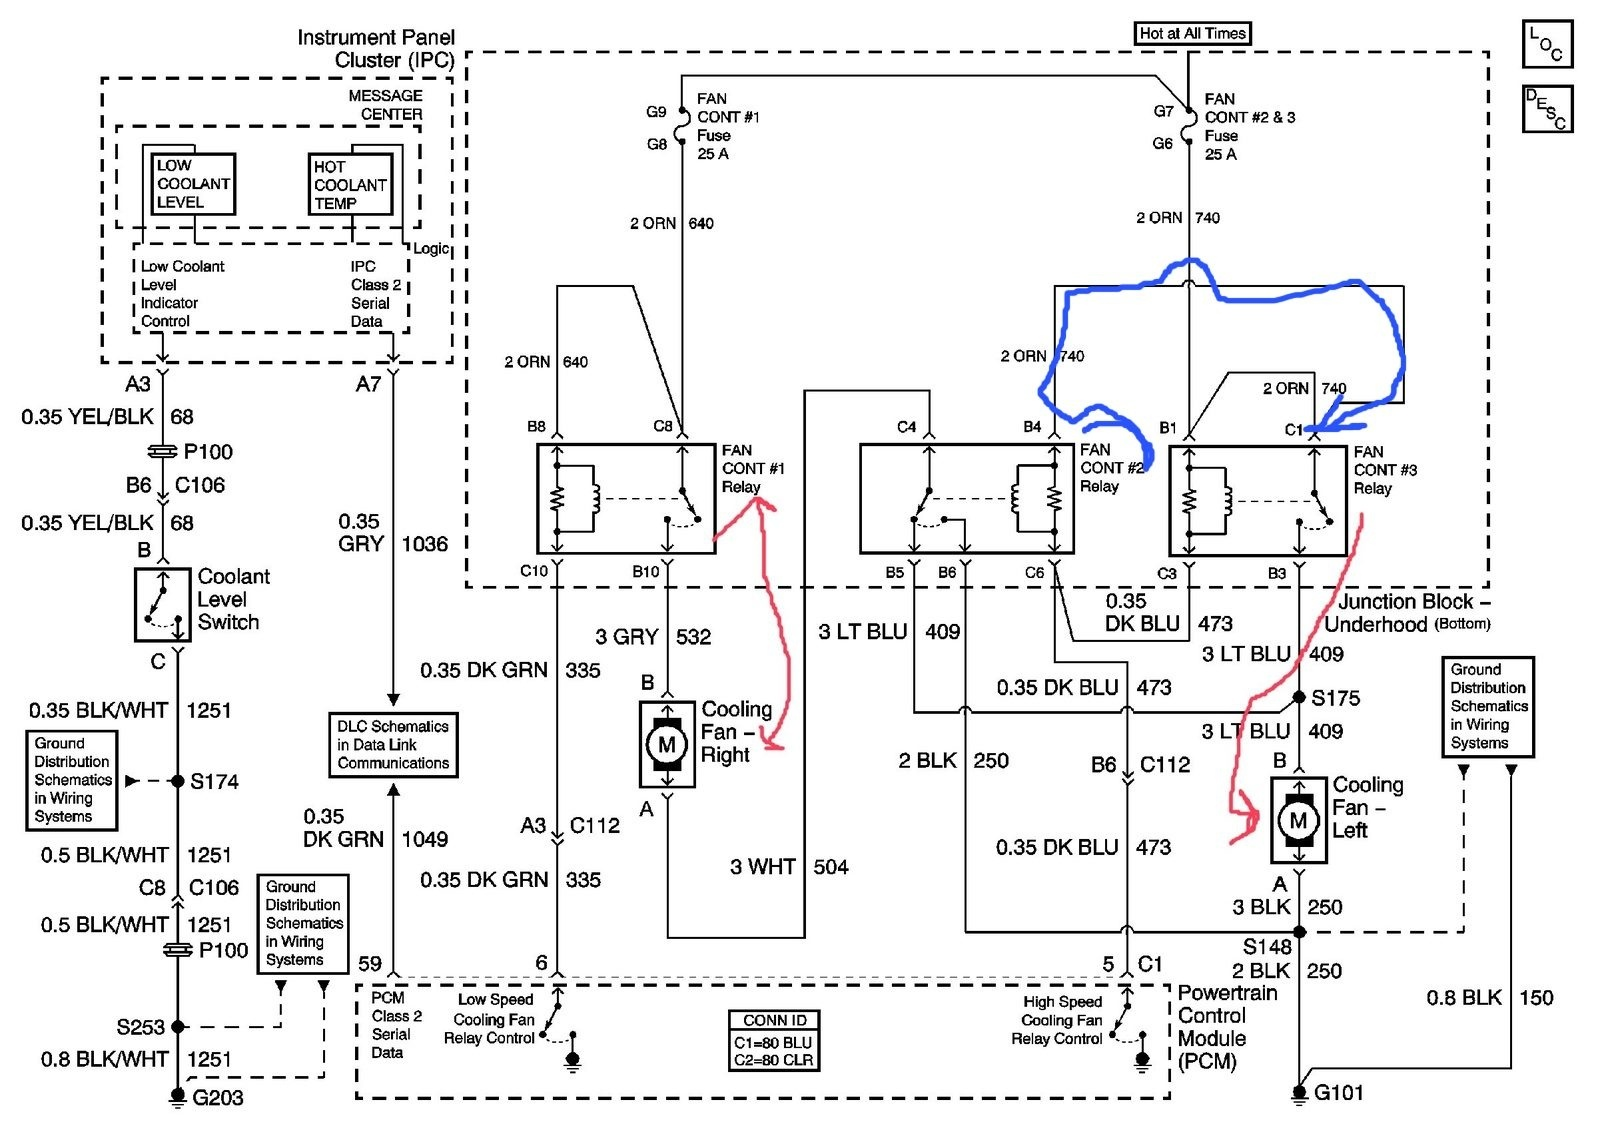 1999 Lincoln Navigator Fuse Box Diagram likewise Mustang Ii Wiring Diagram Cluster likewise Discussion T16270 ds545905 as well 65ak4 Isuzu Trooper S 1993 Isuzu Trooper Valve Cover Gaskets Need in addition 2mpjq 87 Chevy Truck 305 Tbi Woild Know. on 1990 bmw battery location